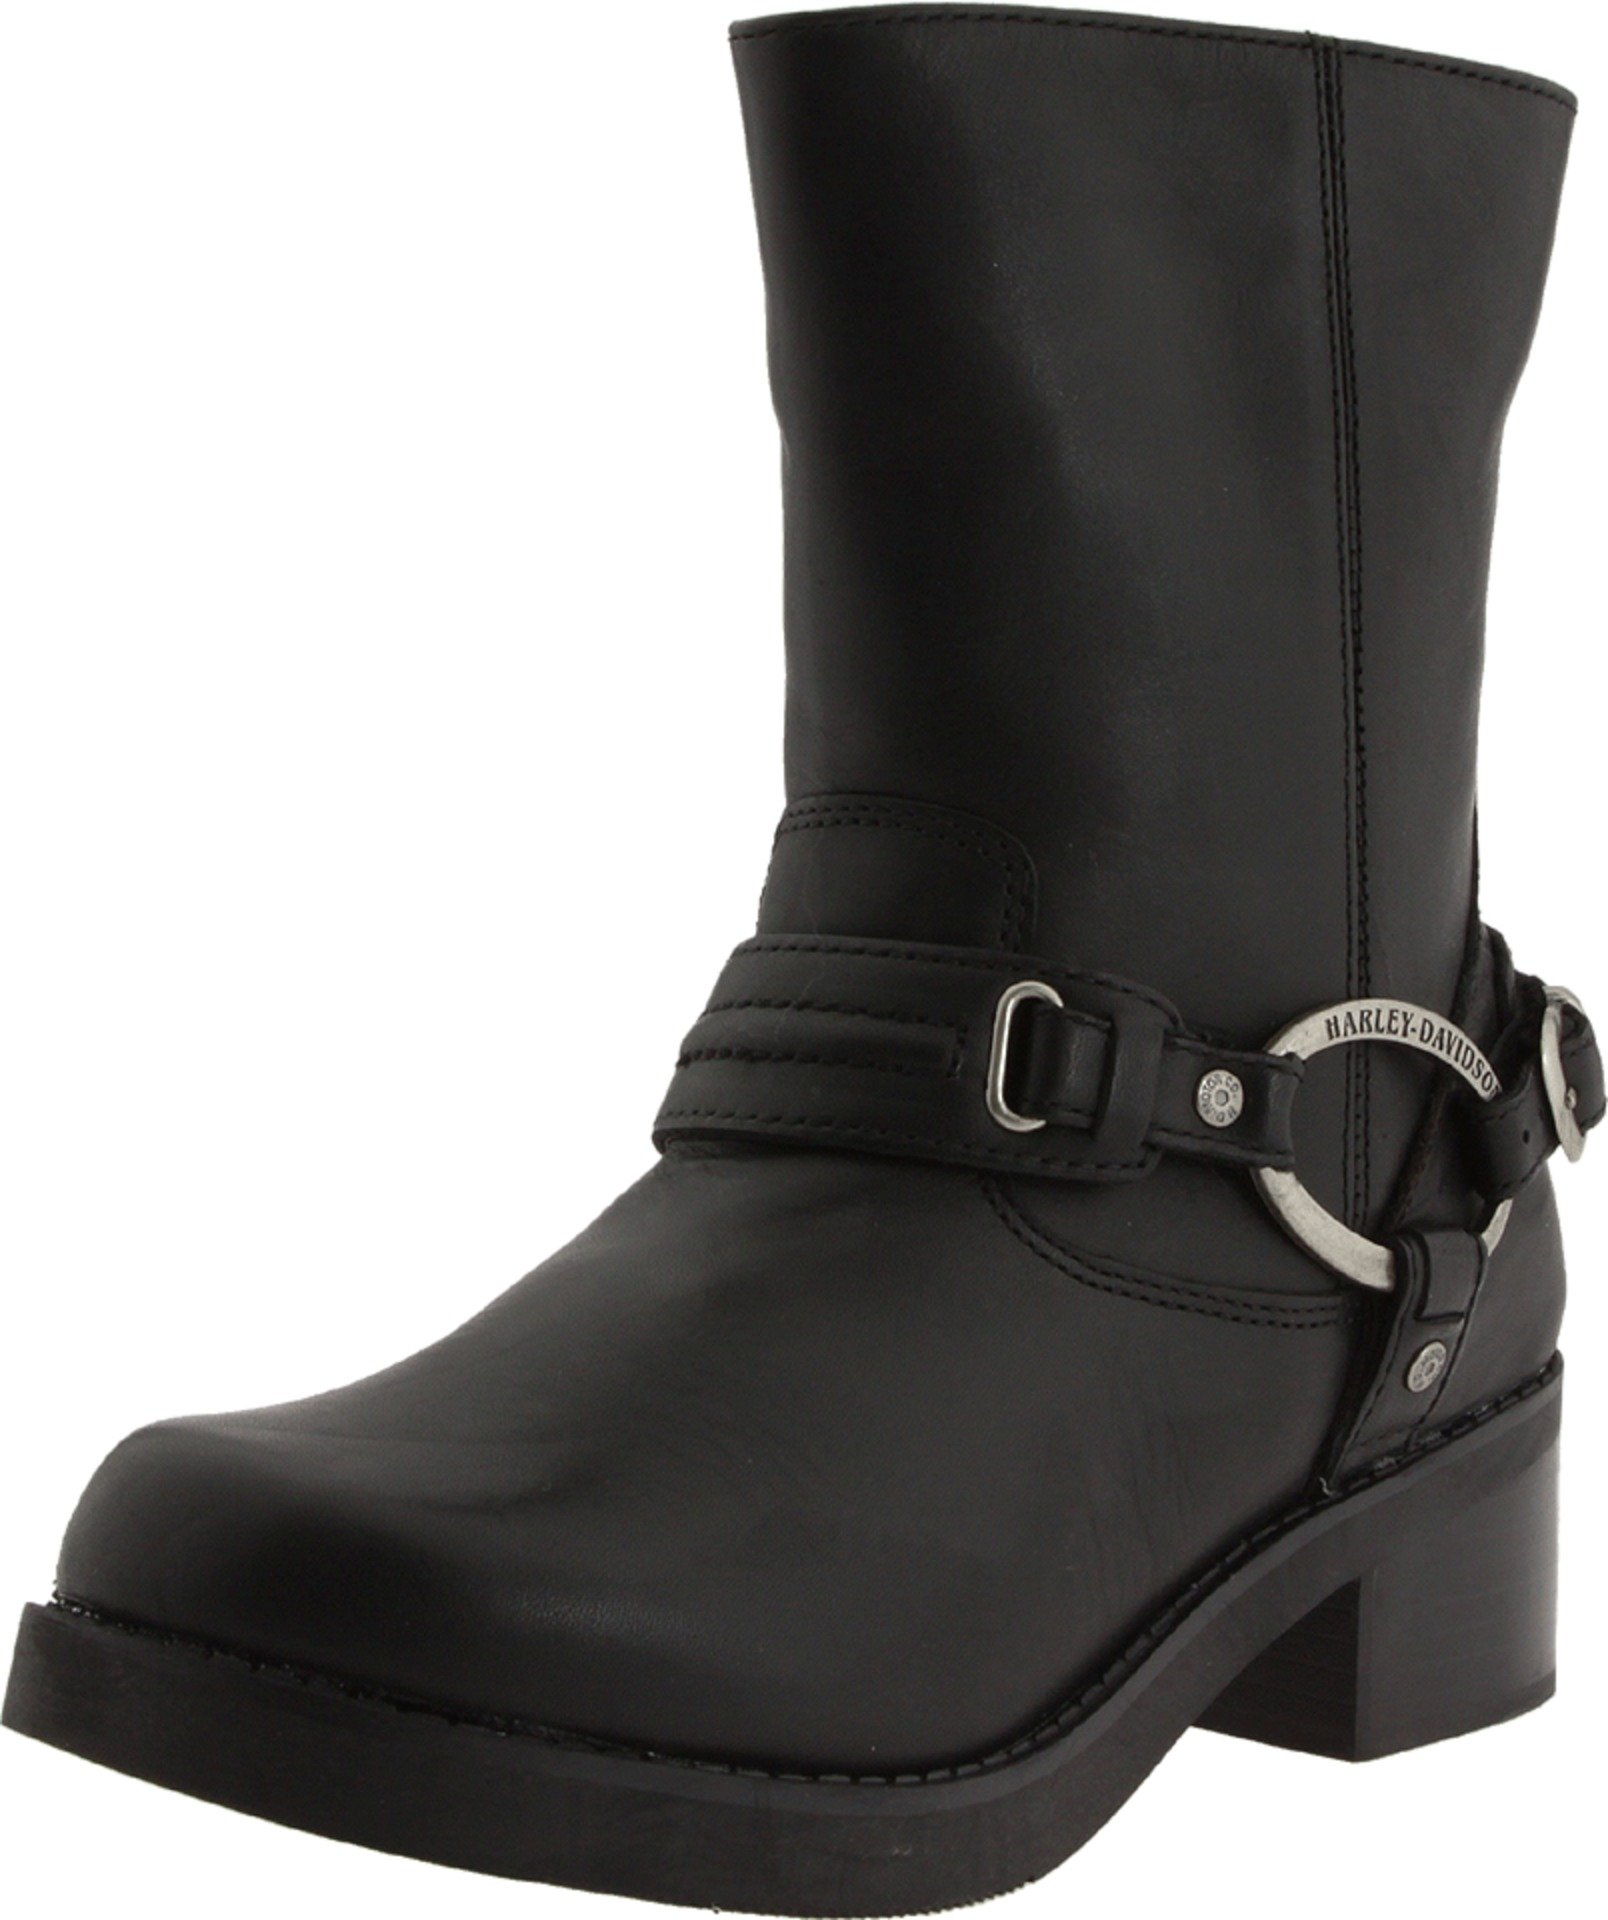 Harley-Davidson Women's Christa Motorcycle Harness Boot, Black, 11 M US by Harley-Davidson (Image #1)